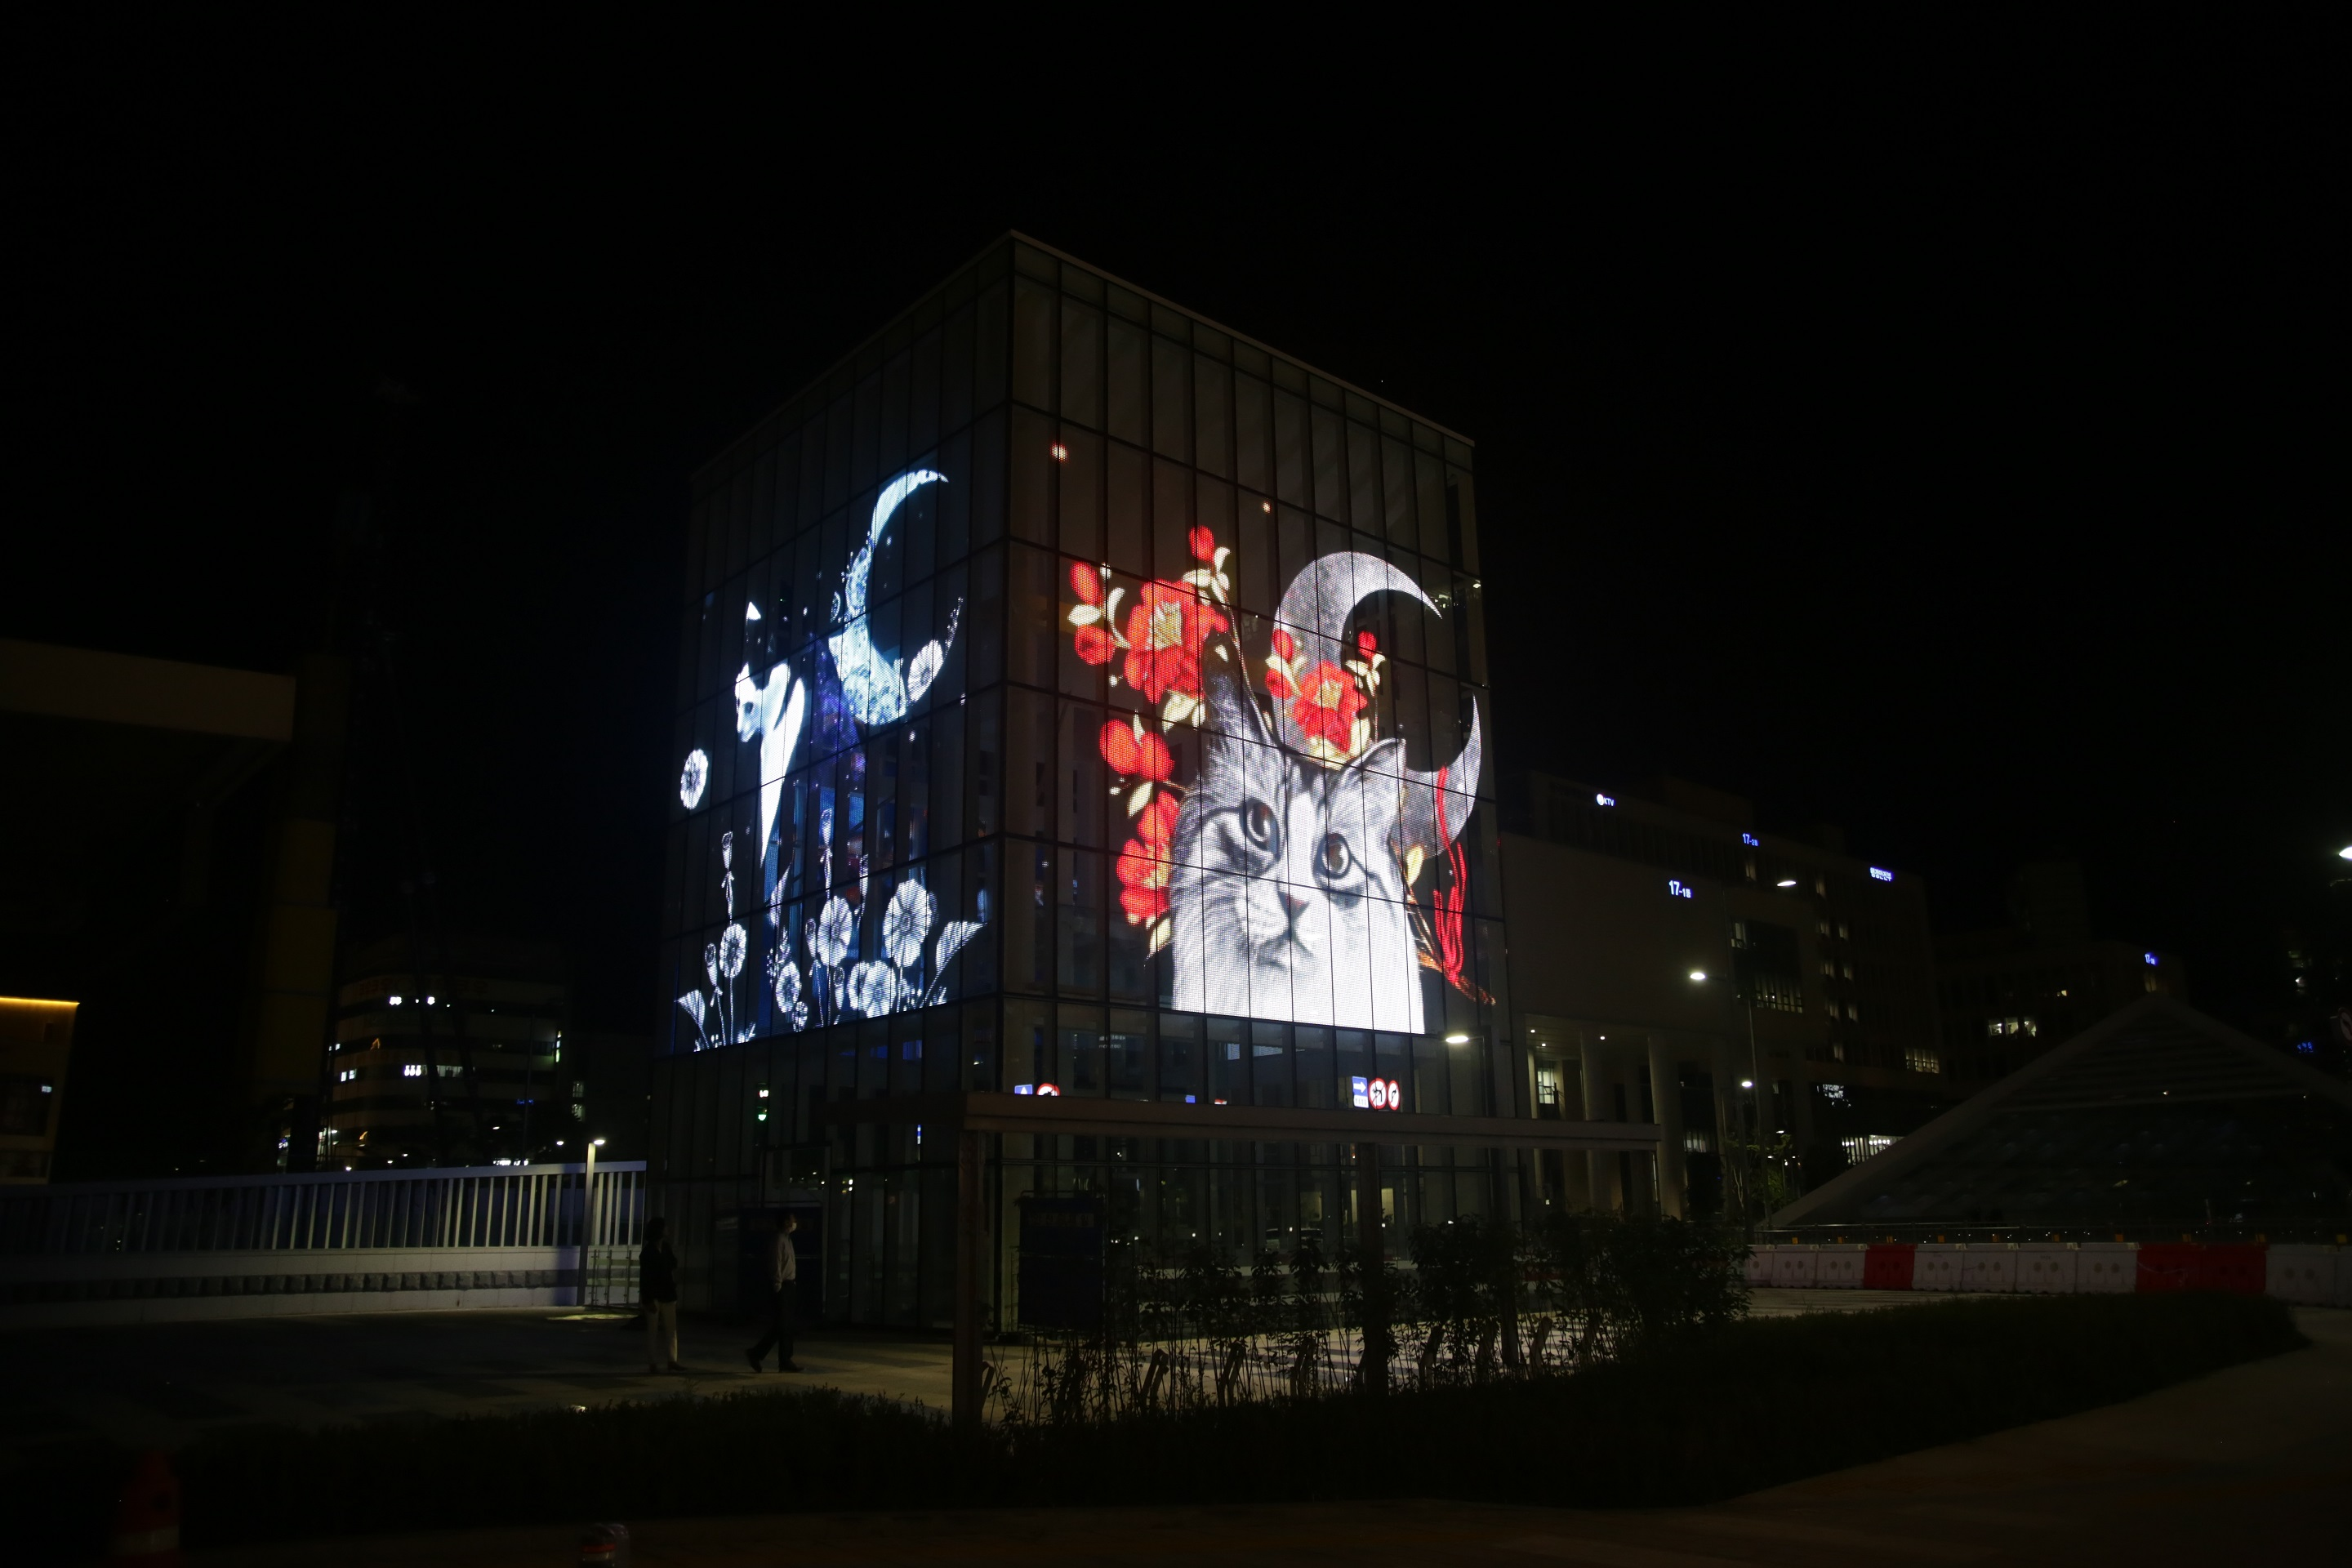 Architectural-grade LED glass, GLAAM Media Glass (G-Glass) featured at the Sejong Urban Square Media Cube, Sejong, South Korea